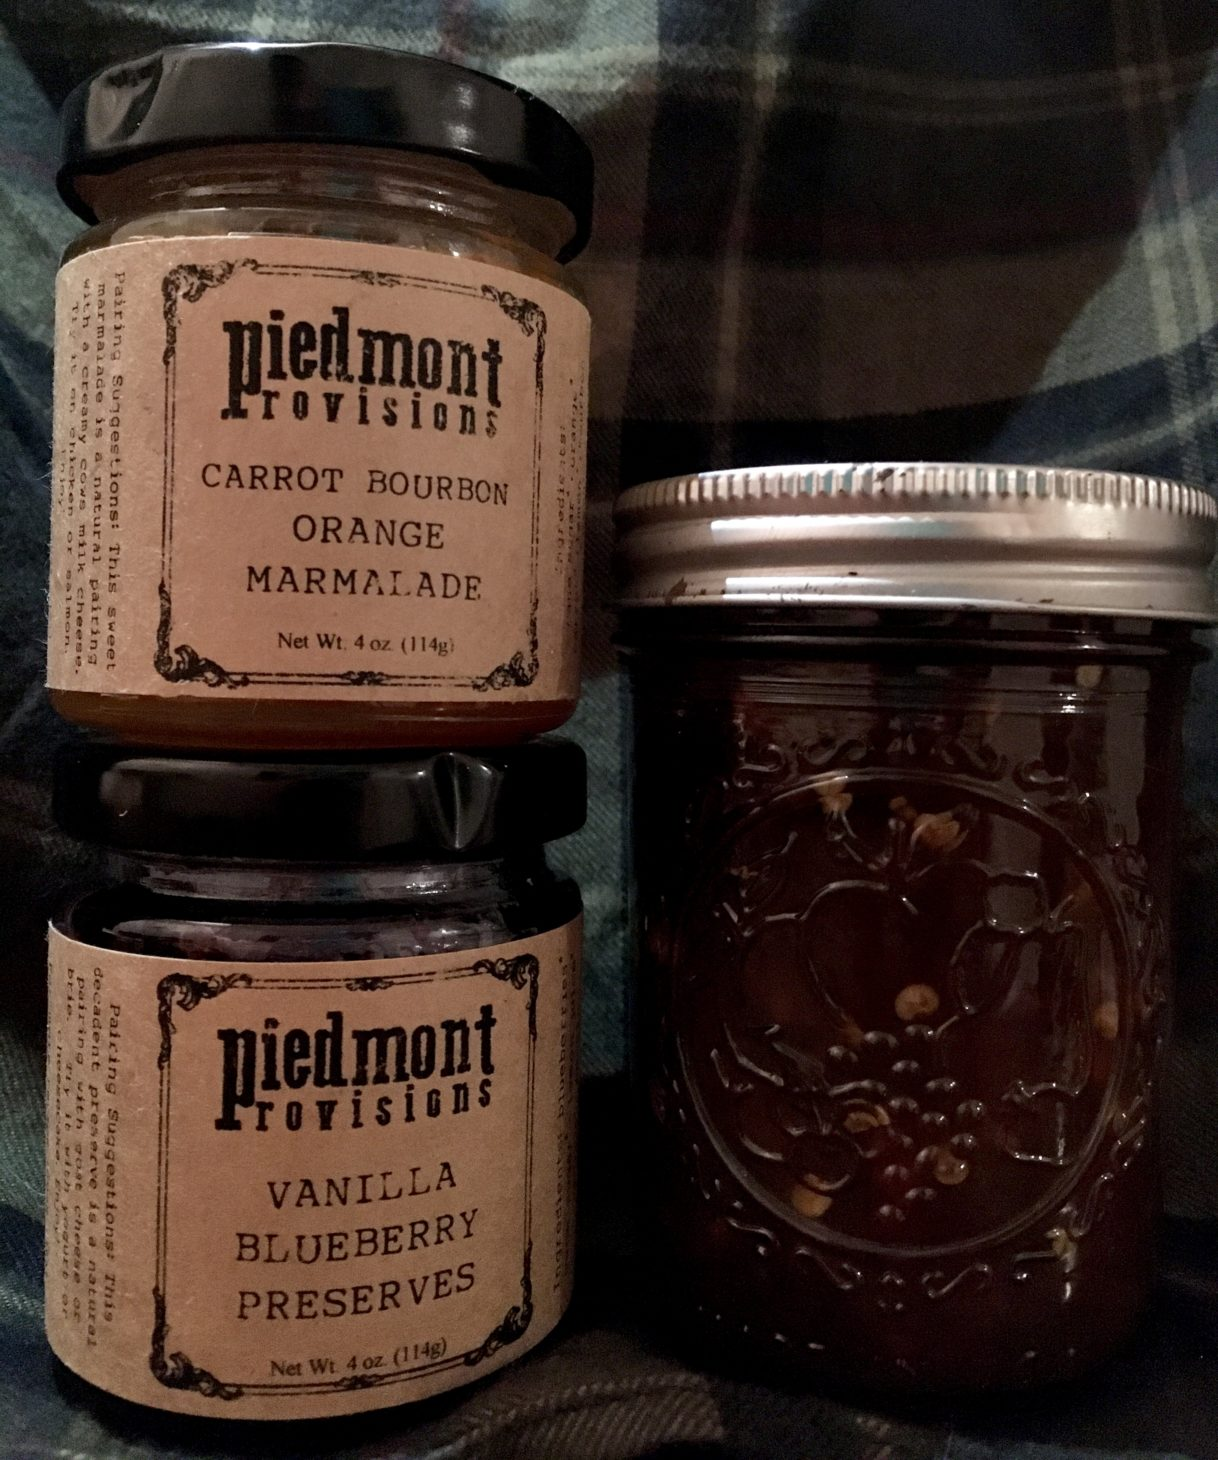 Midnight Snack: Trader Joe's Seeded Bread with Piedmont Provisions Carrot Bourbon Orange Marmalade and Vanilla Blueberry Preserves – Athens, Georgia – 06/12/2020